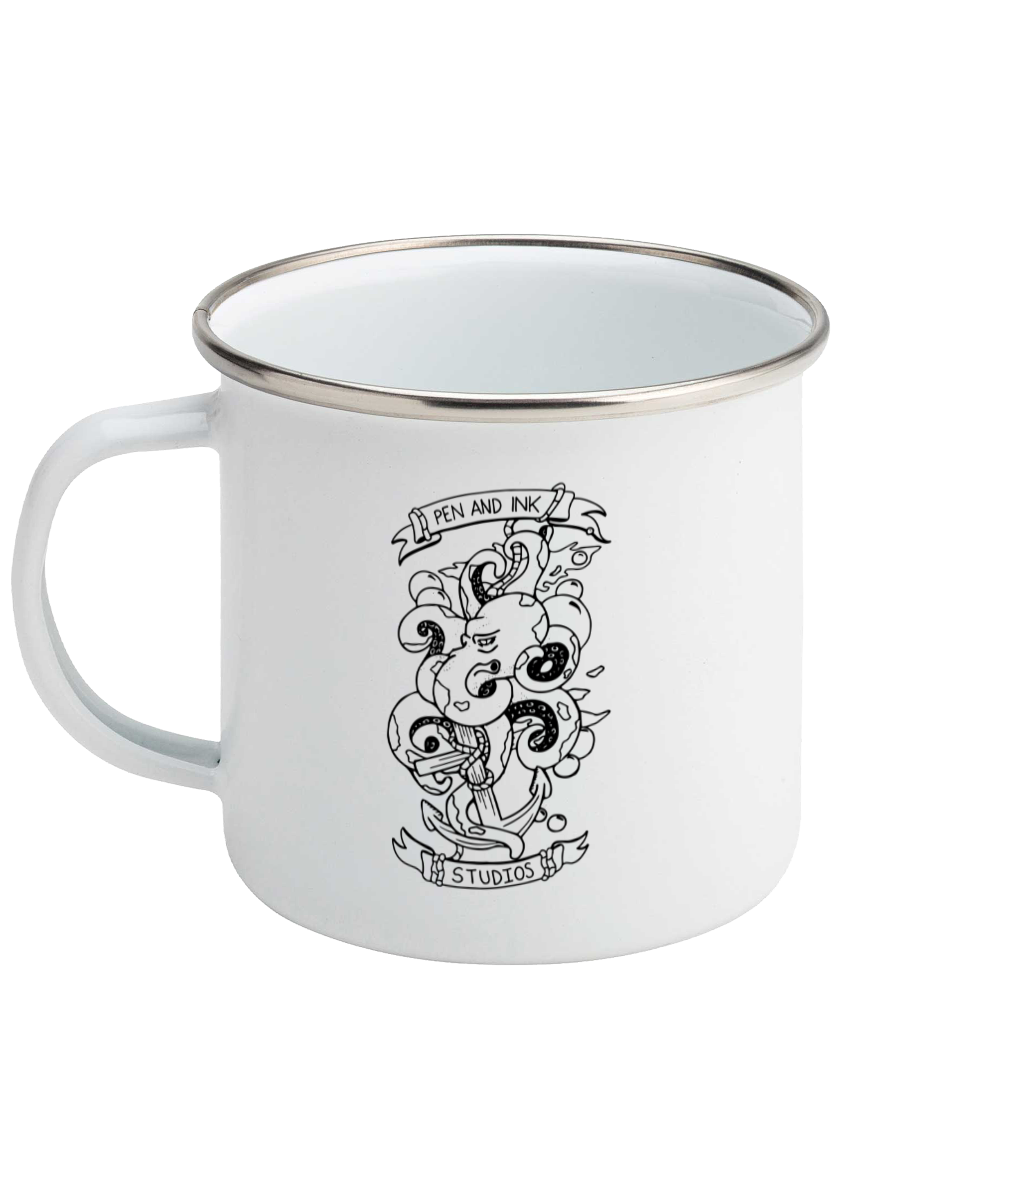 Pen and Ink Studios Brand, All At Sea - Enamel Mug